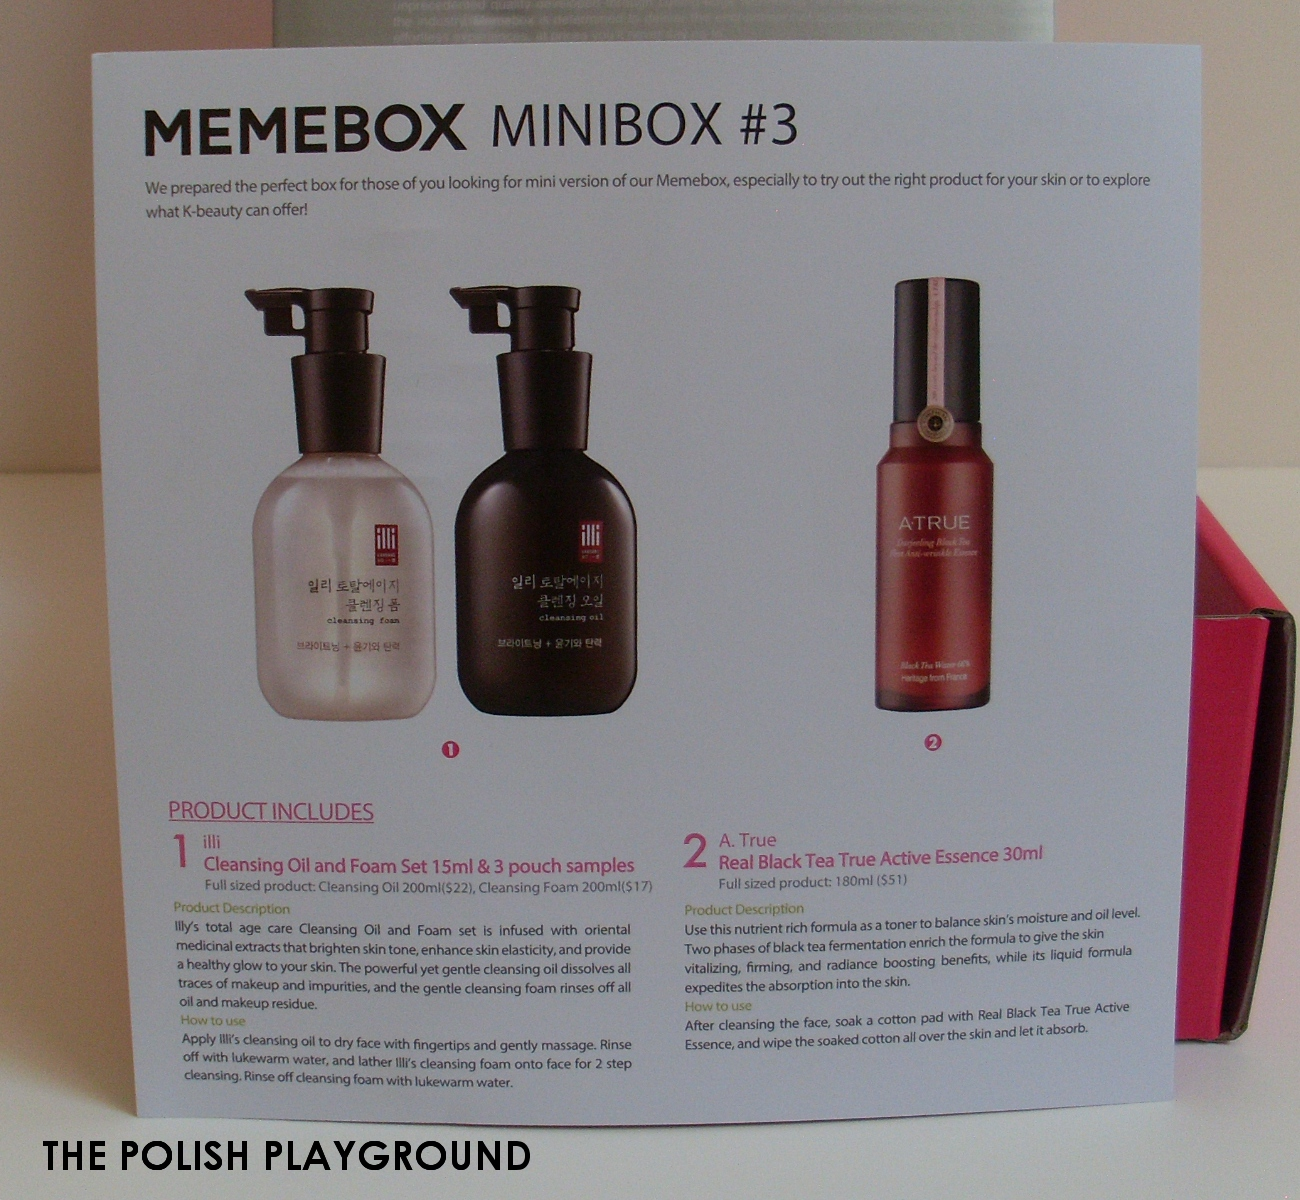 Memebox Minibox #3 Unboxing